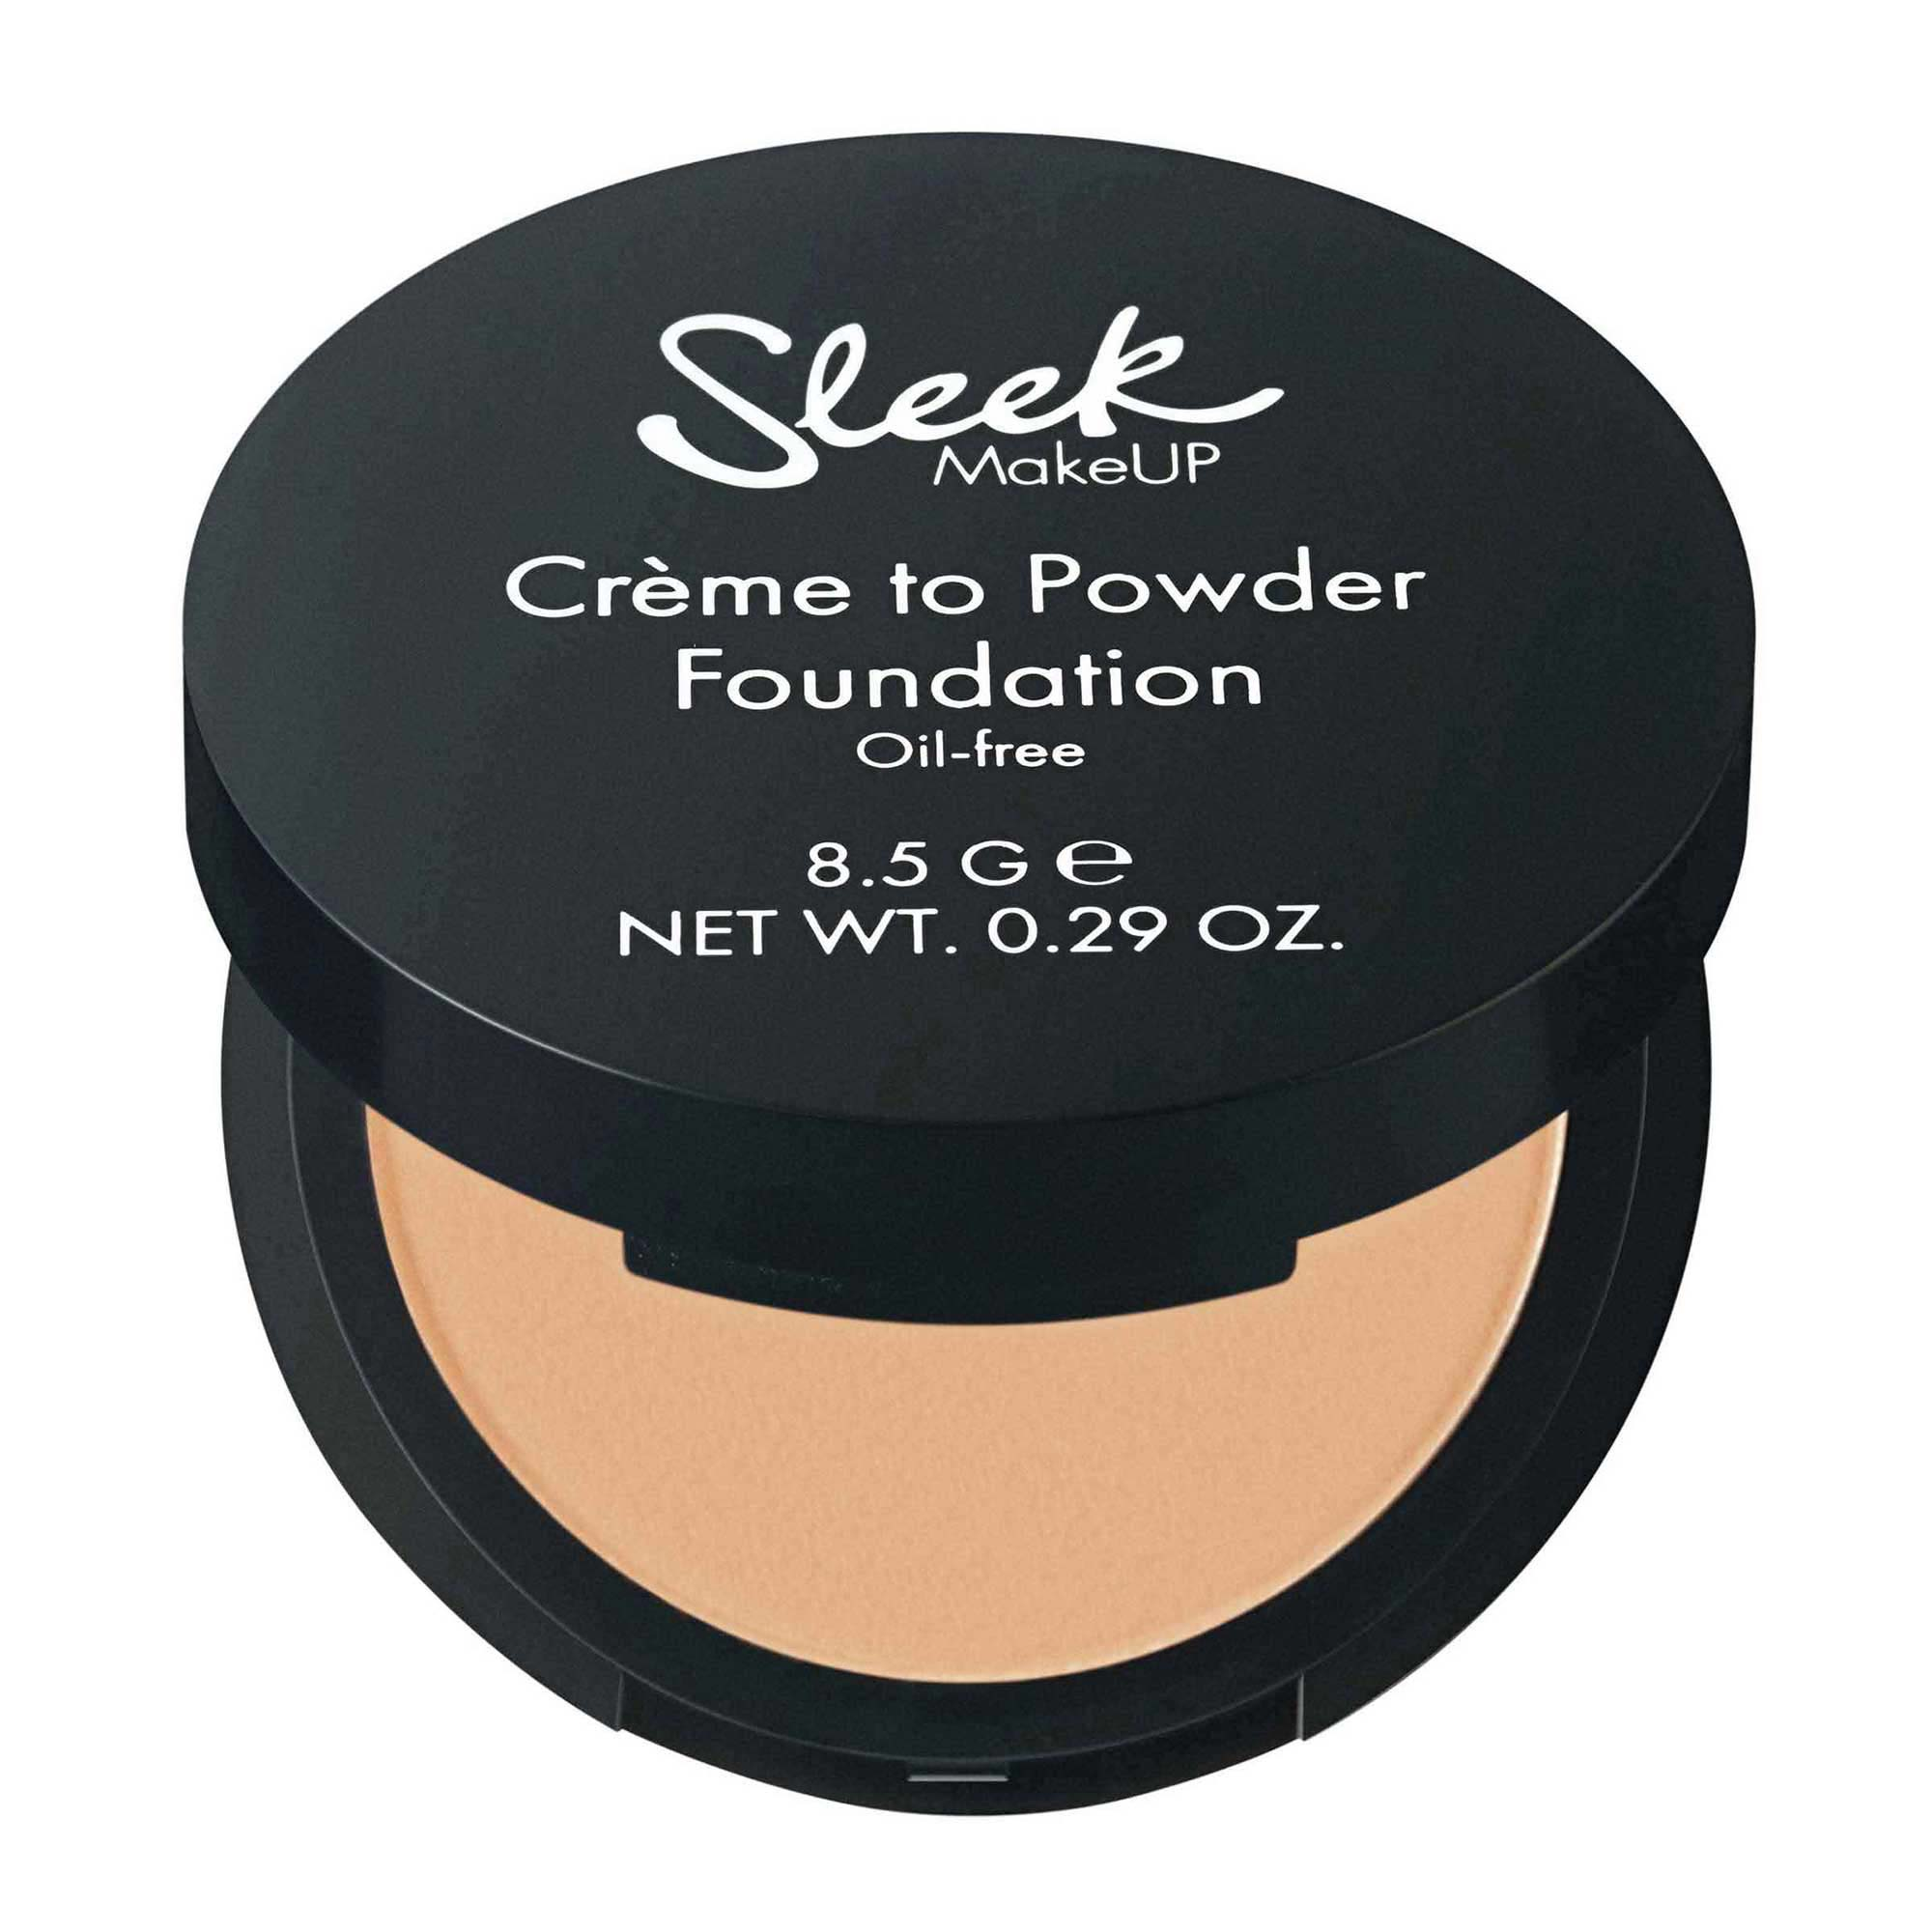 Crème to Powder Foundation C2P3